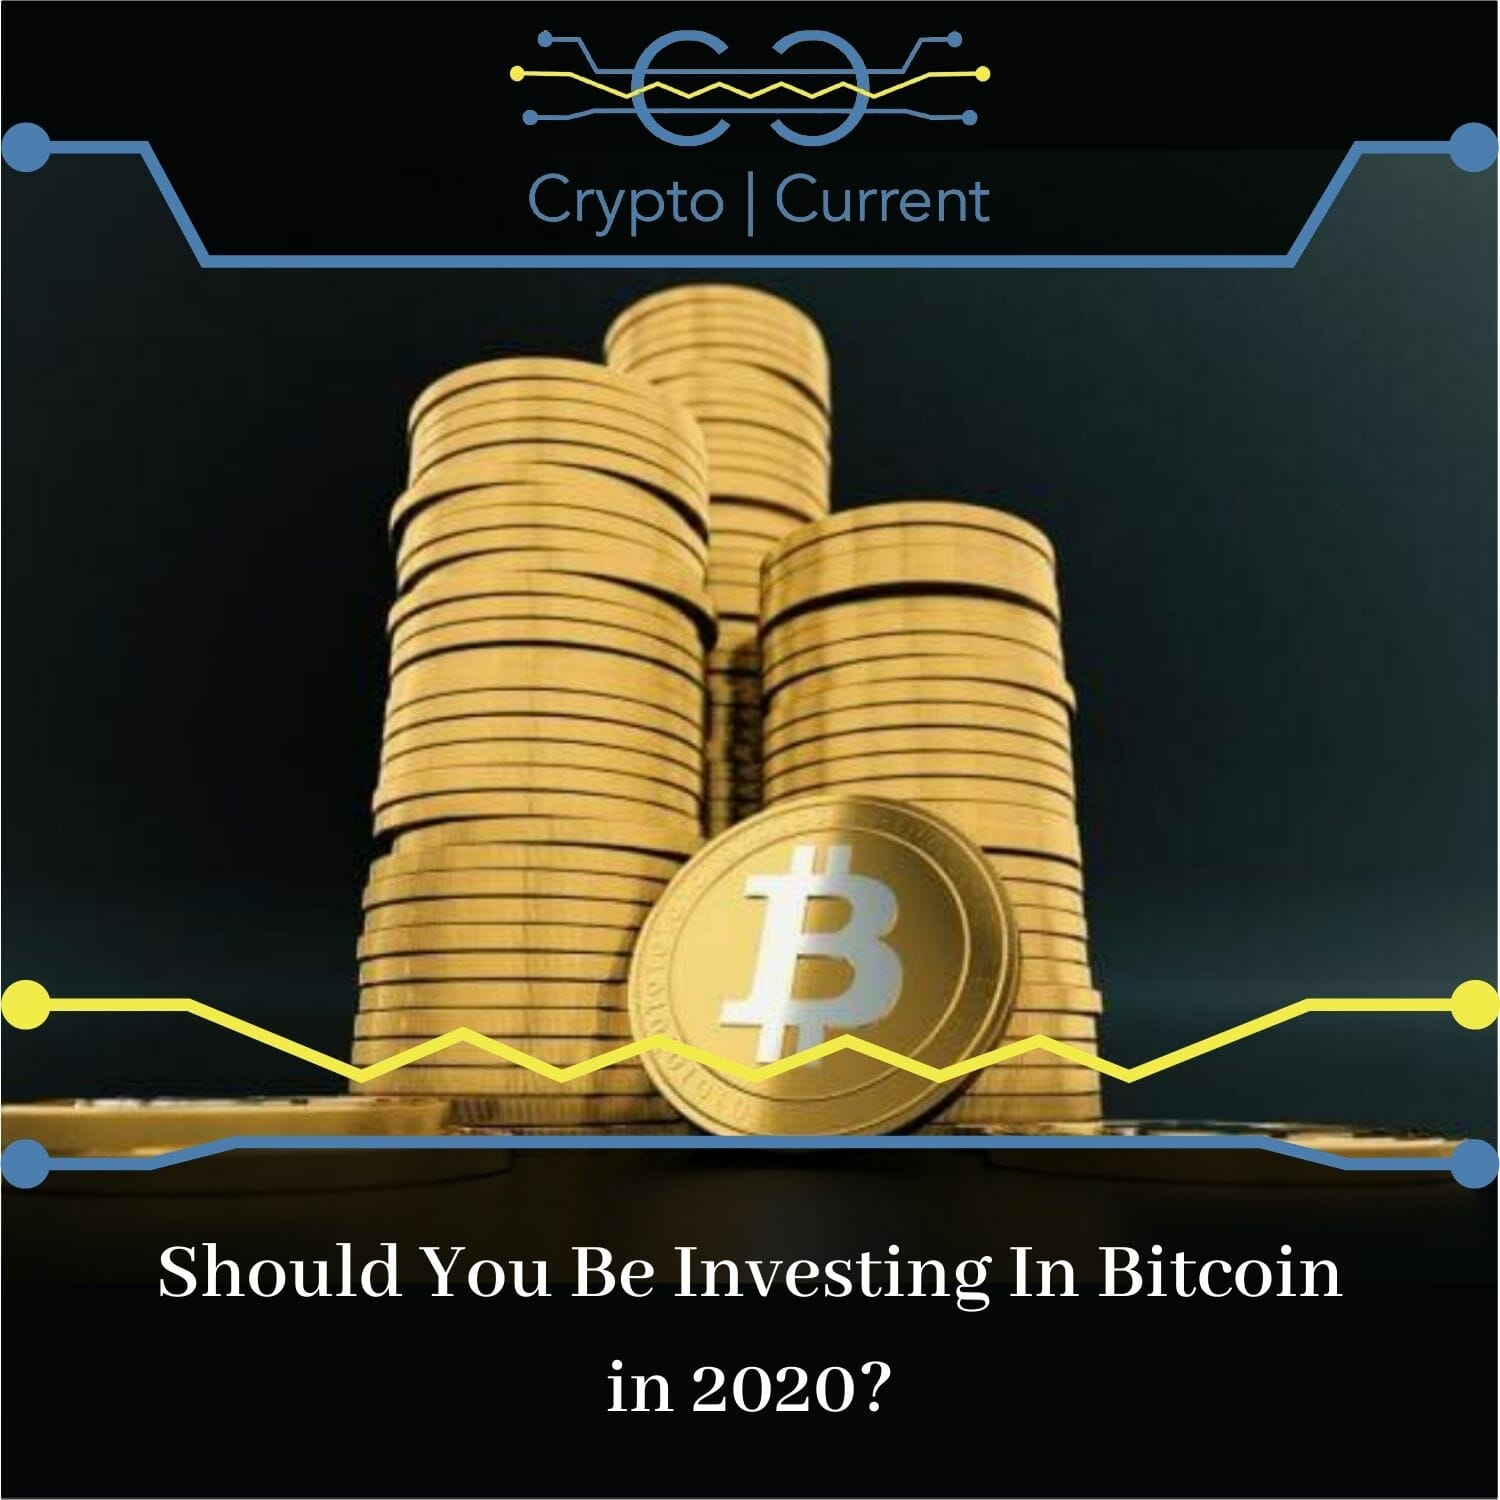 Should You Be Investing In Bitcoin in 2020?